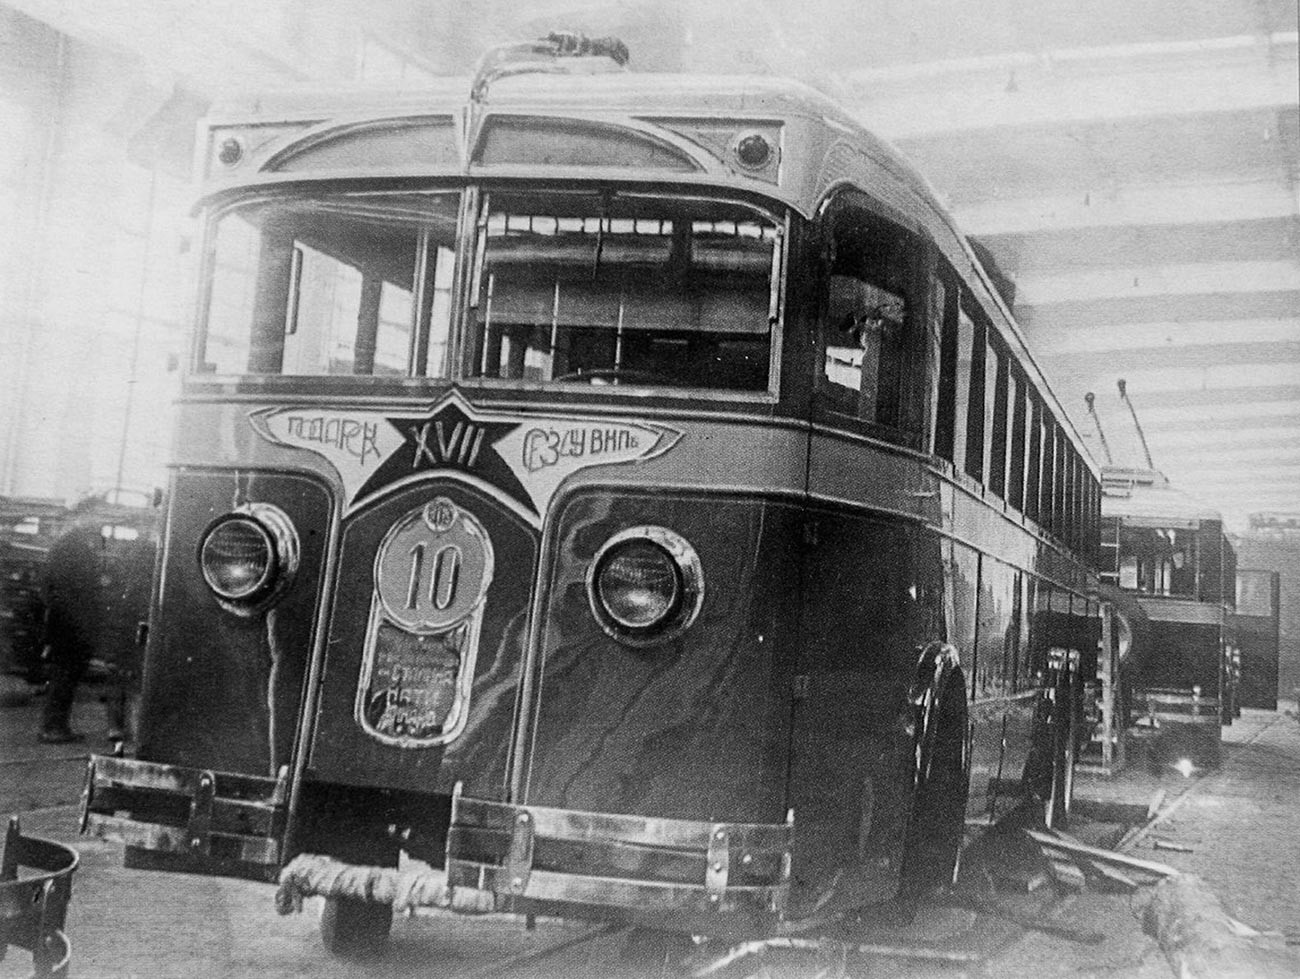 LK-1. Moscow, 1934.